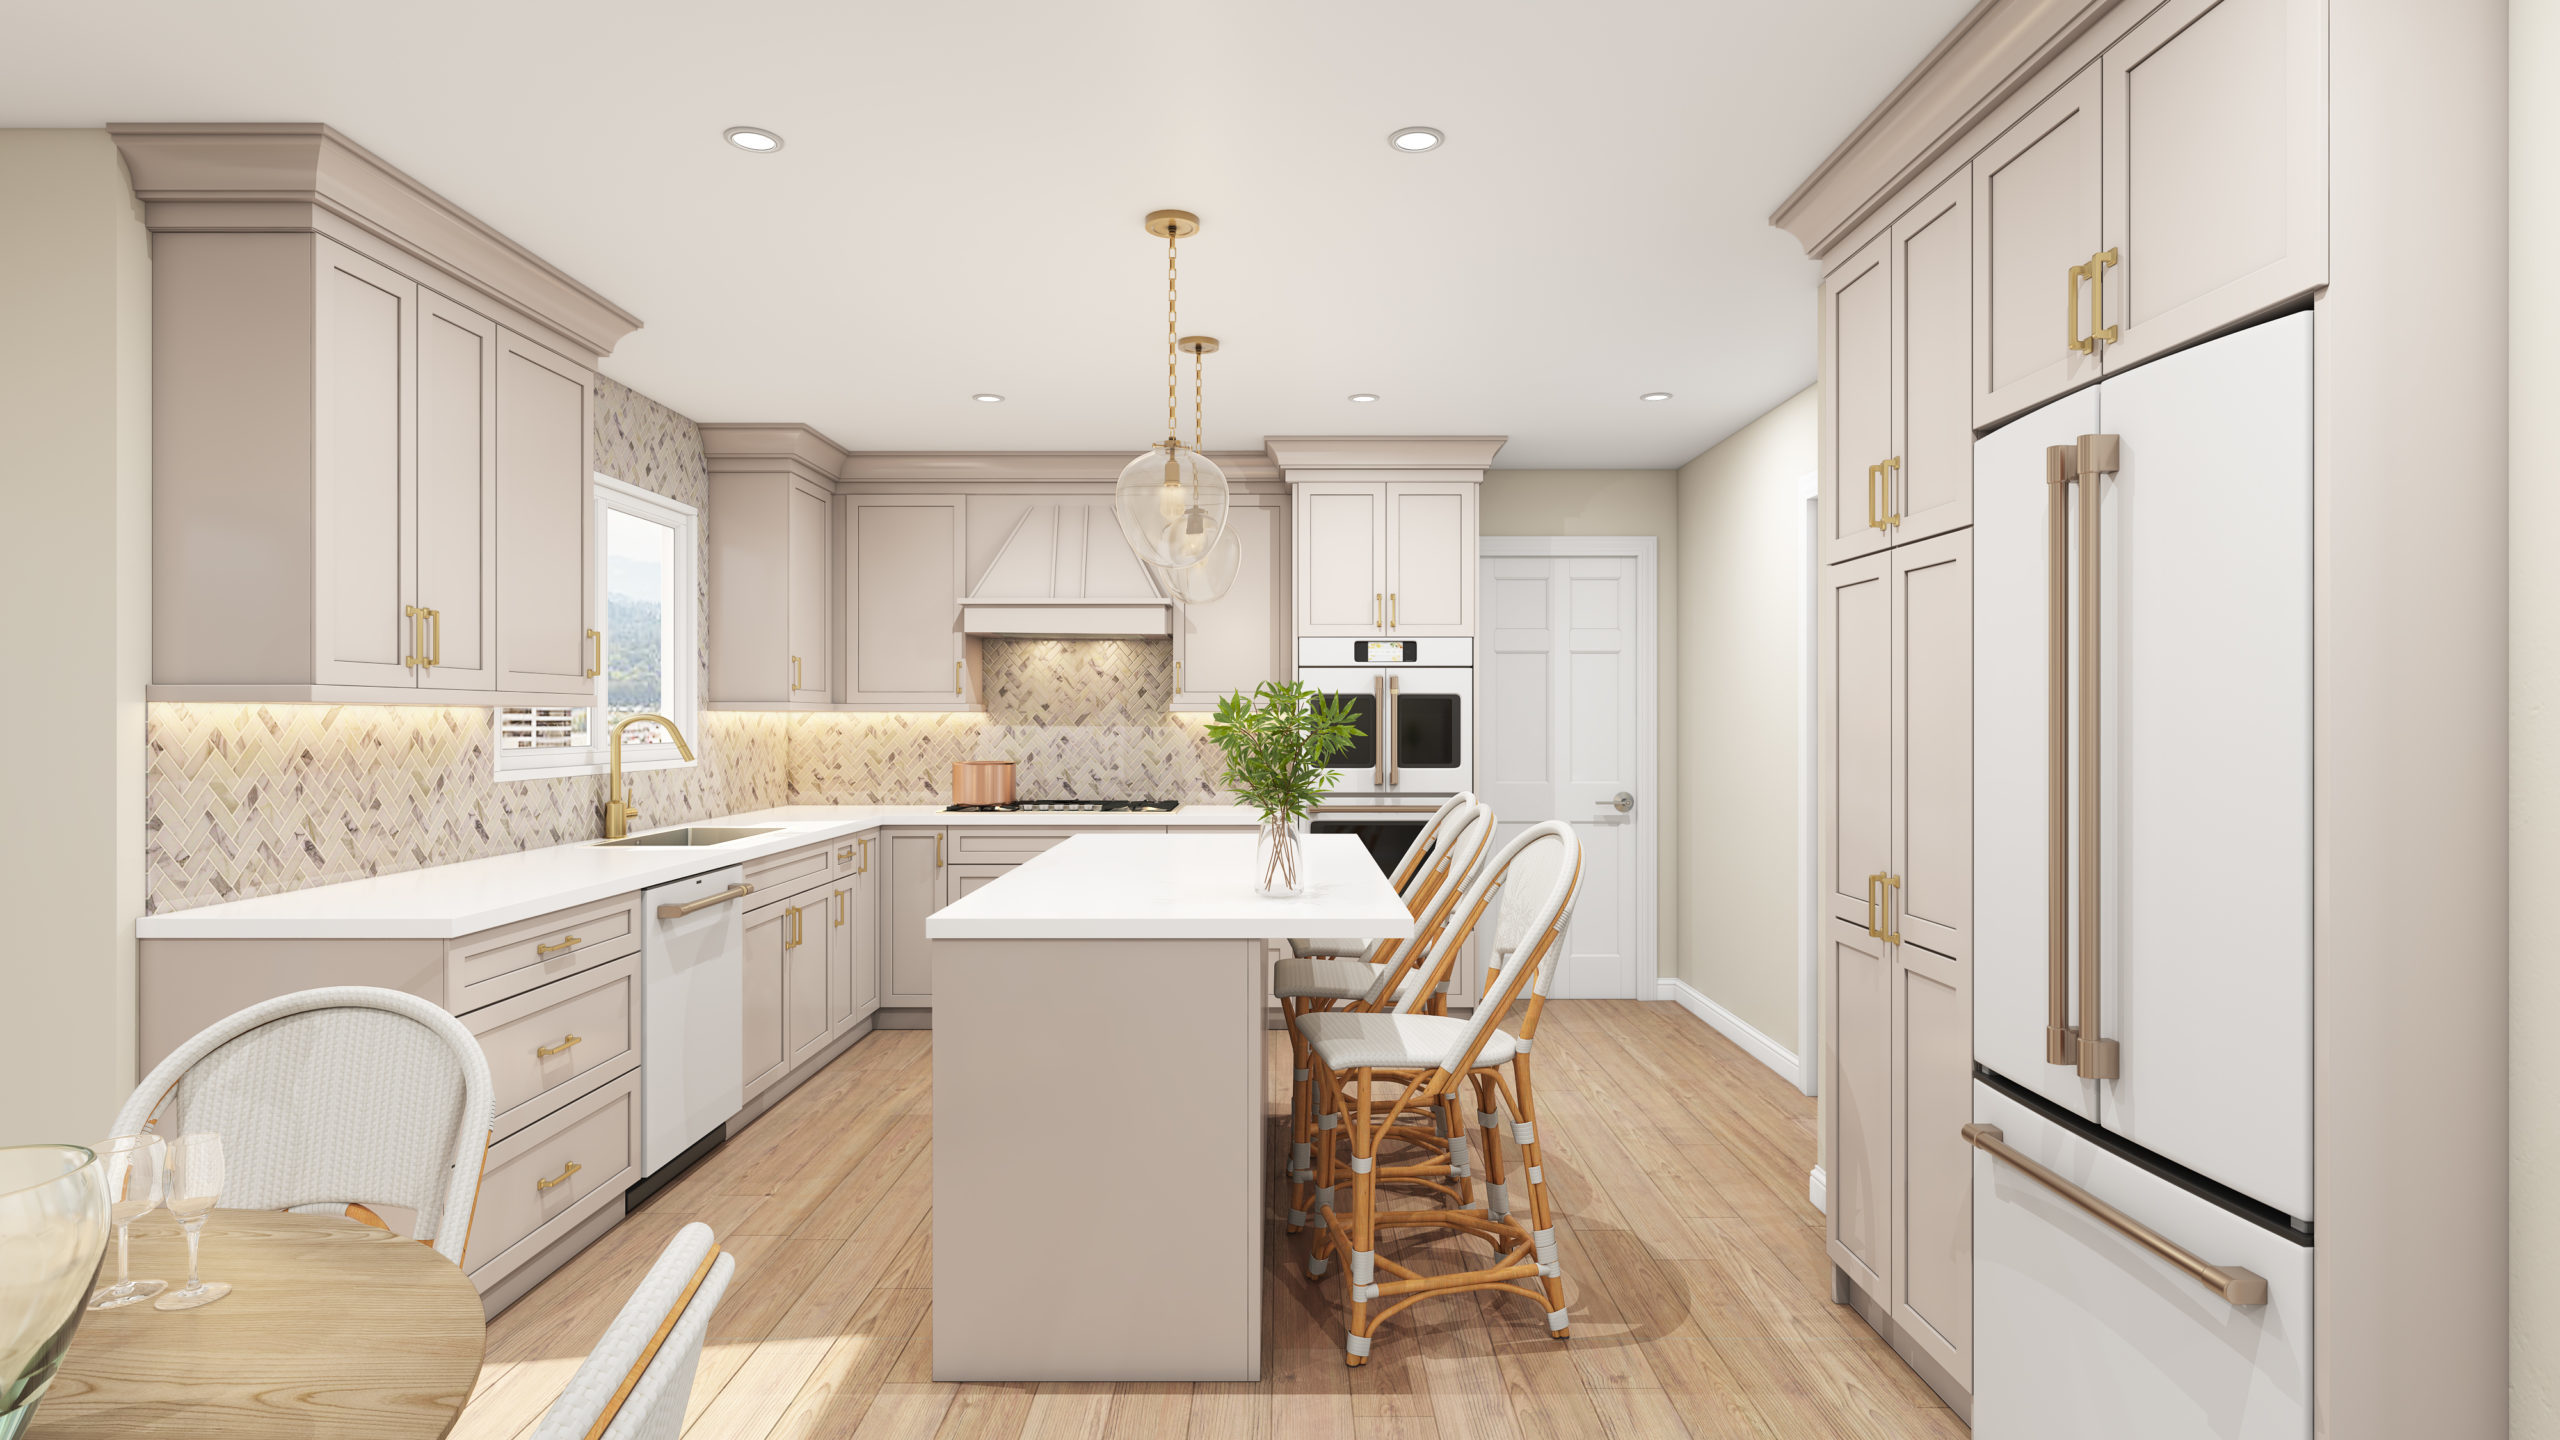 2021 kitchen cabinetry trends to refresh your home